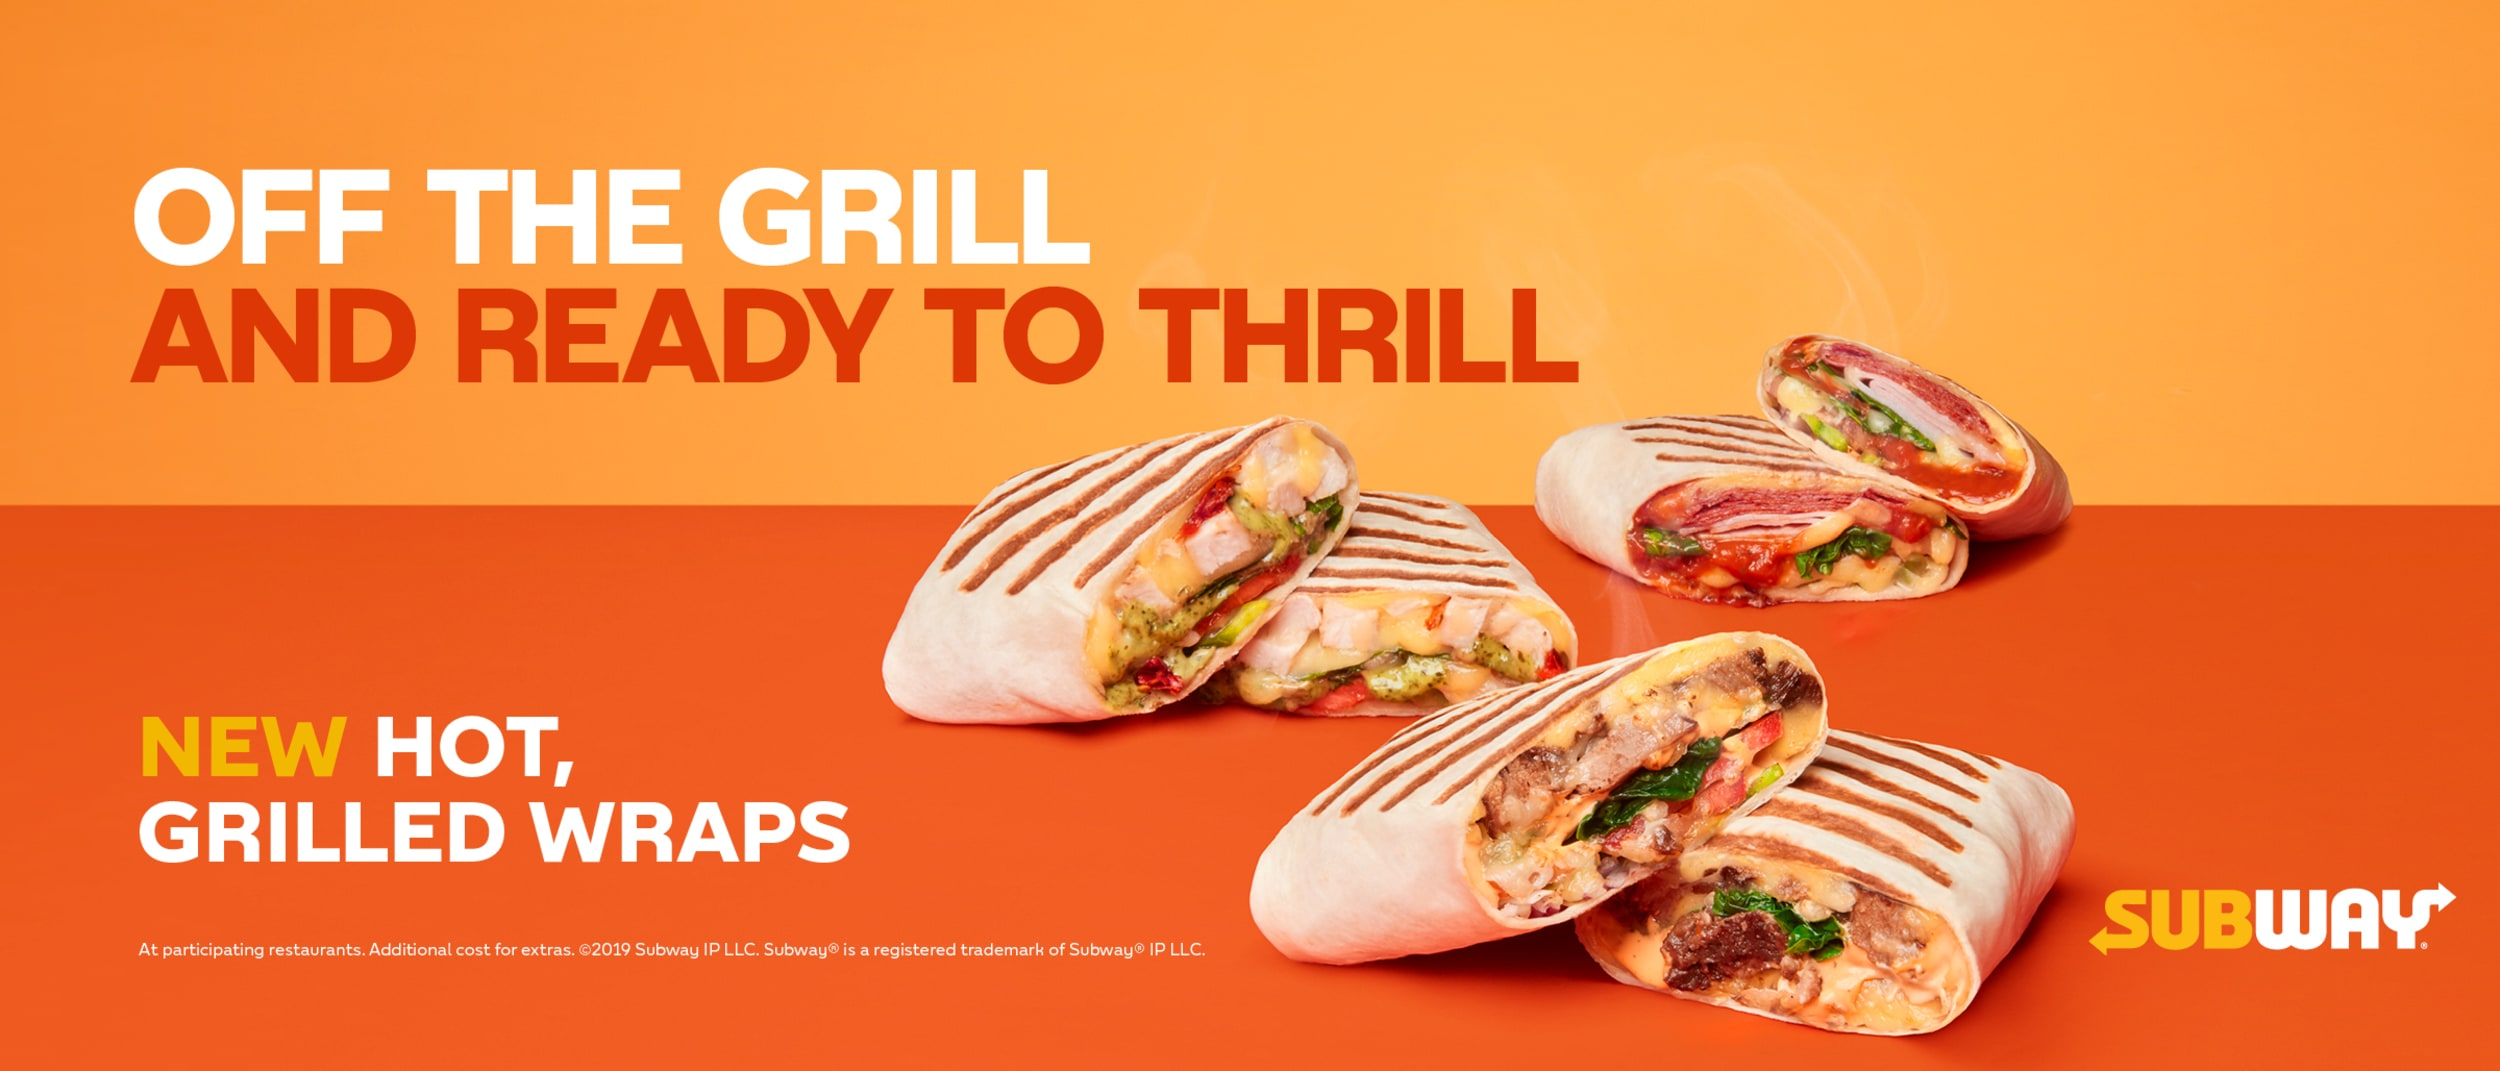 Subway offers new mouth-watering, hot, grilled wraps.